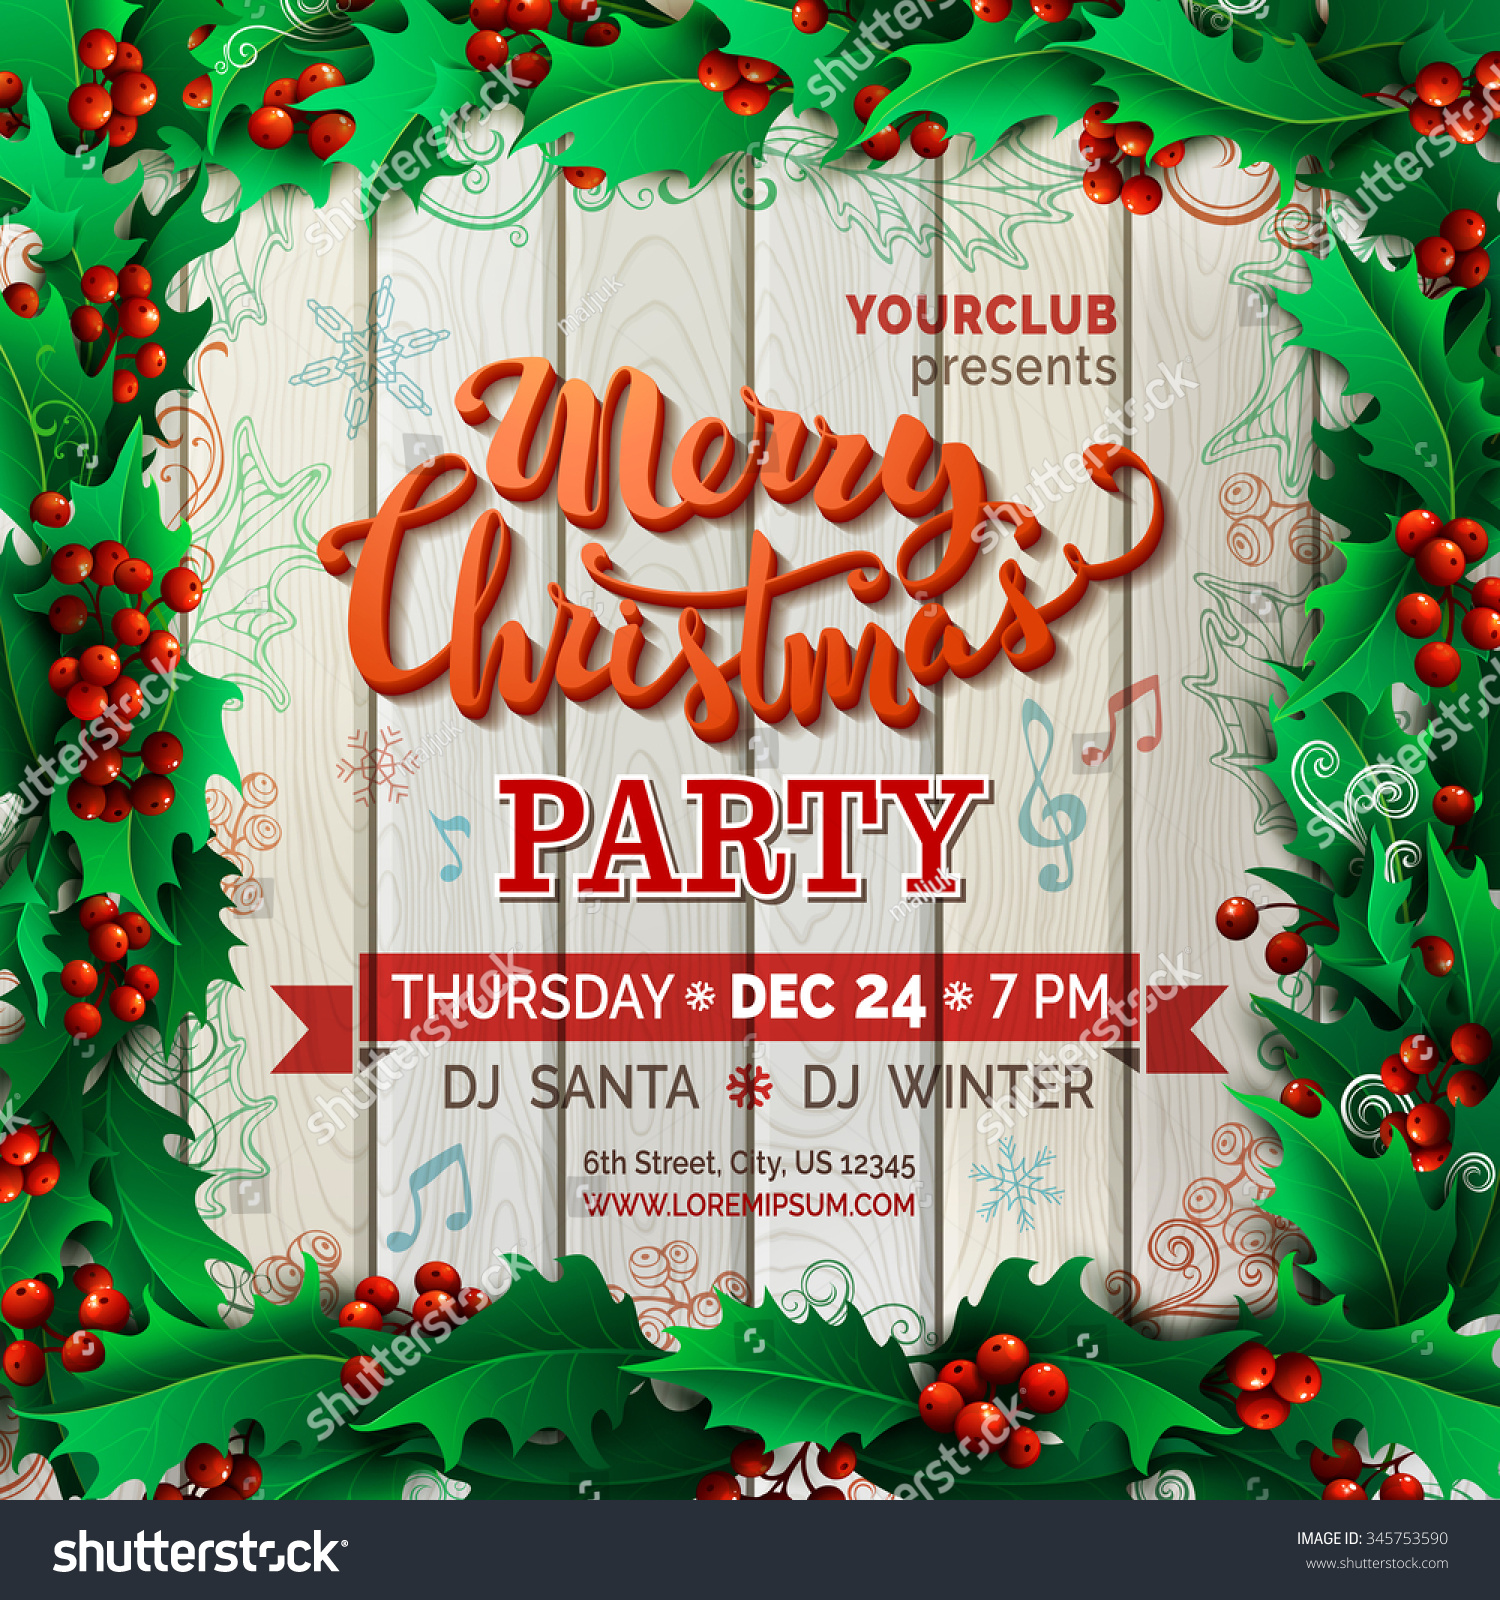 Merry Christmas Music Party Template Vector holly berries Christmas background There is place for your text on wood background in the center